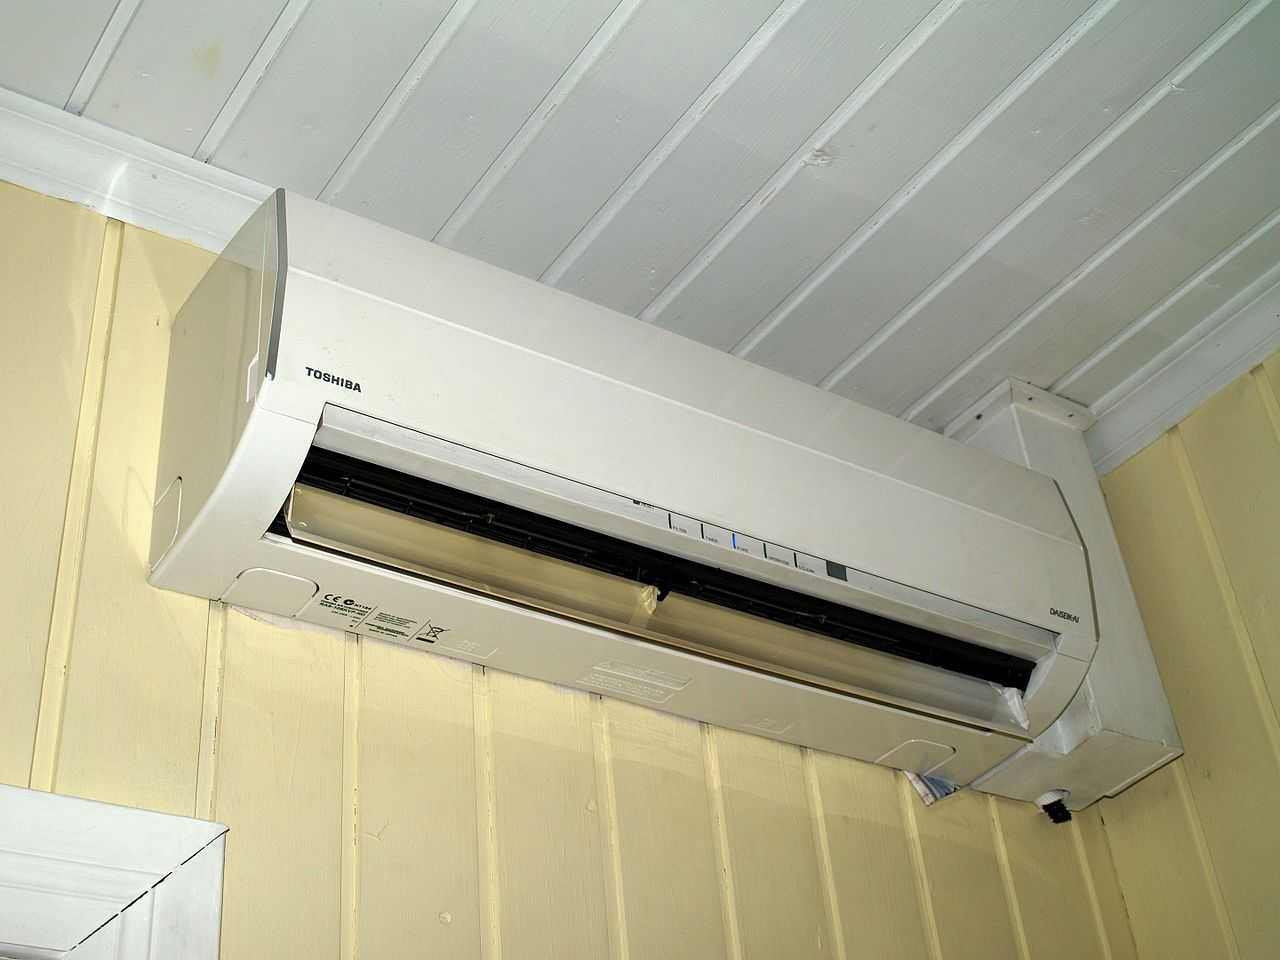 image - 3 Common Air Conditioner Problems and Their Solutions